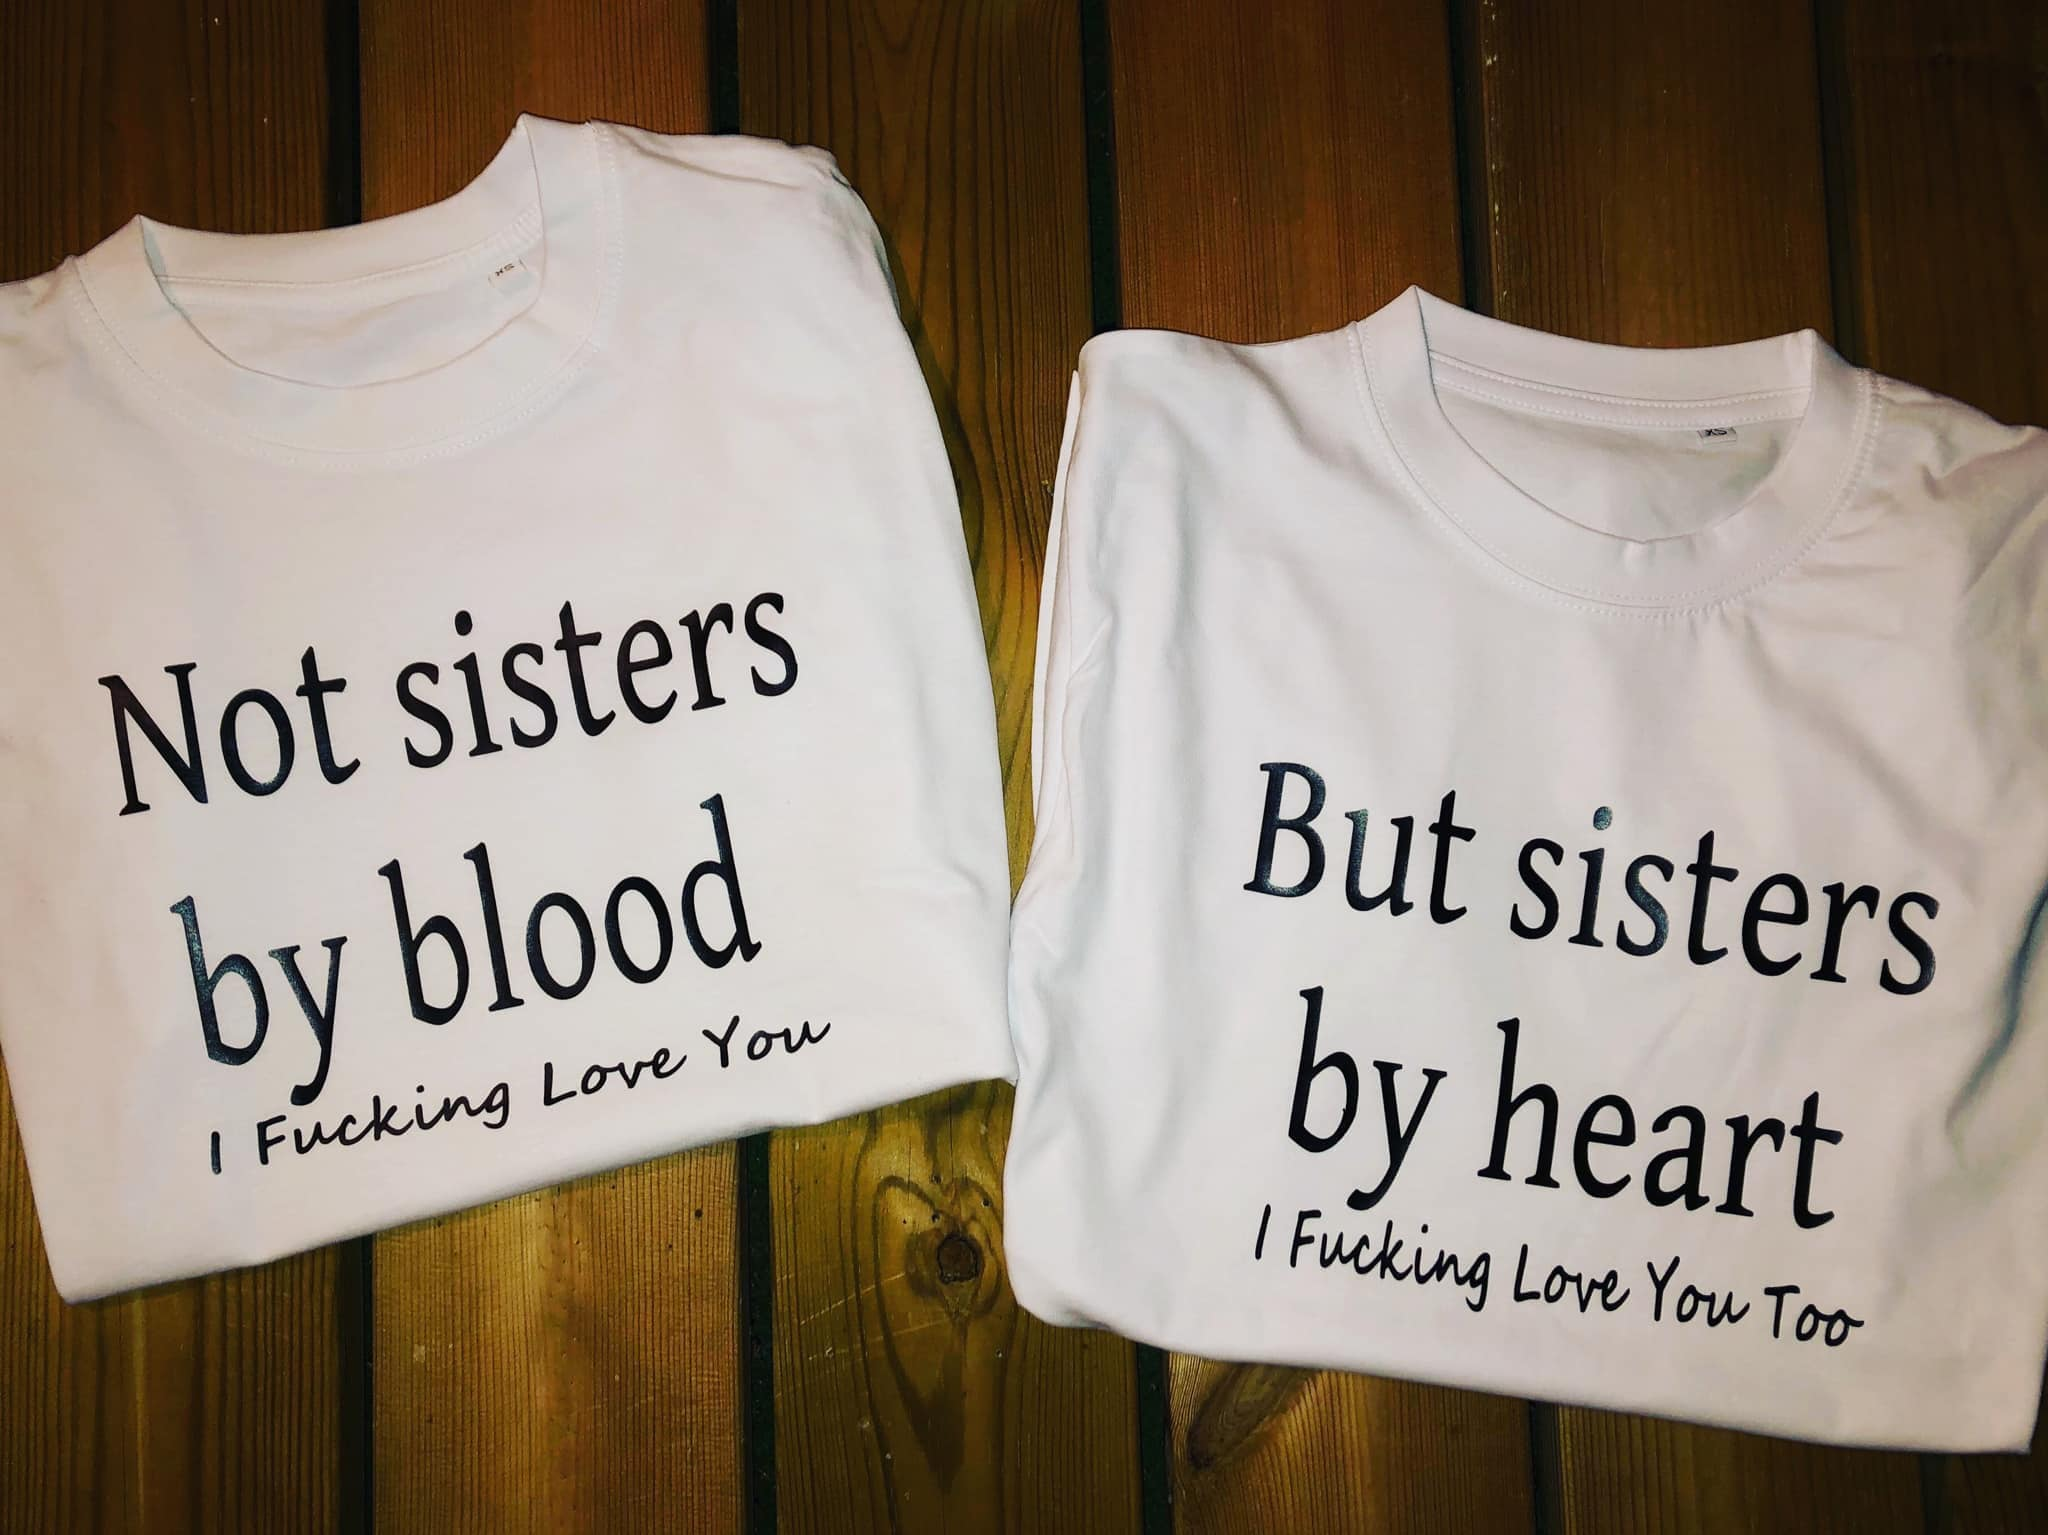 Not sisters by blood I fucking love you shirt